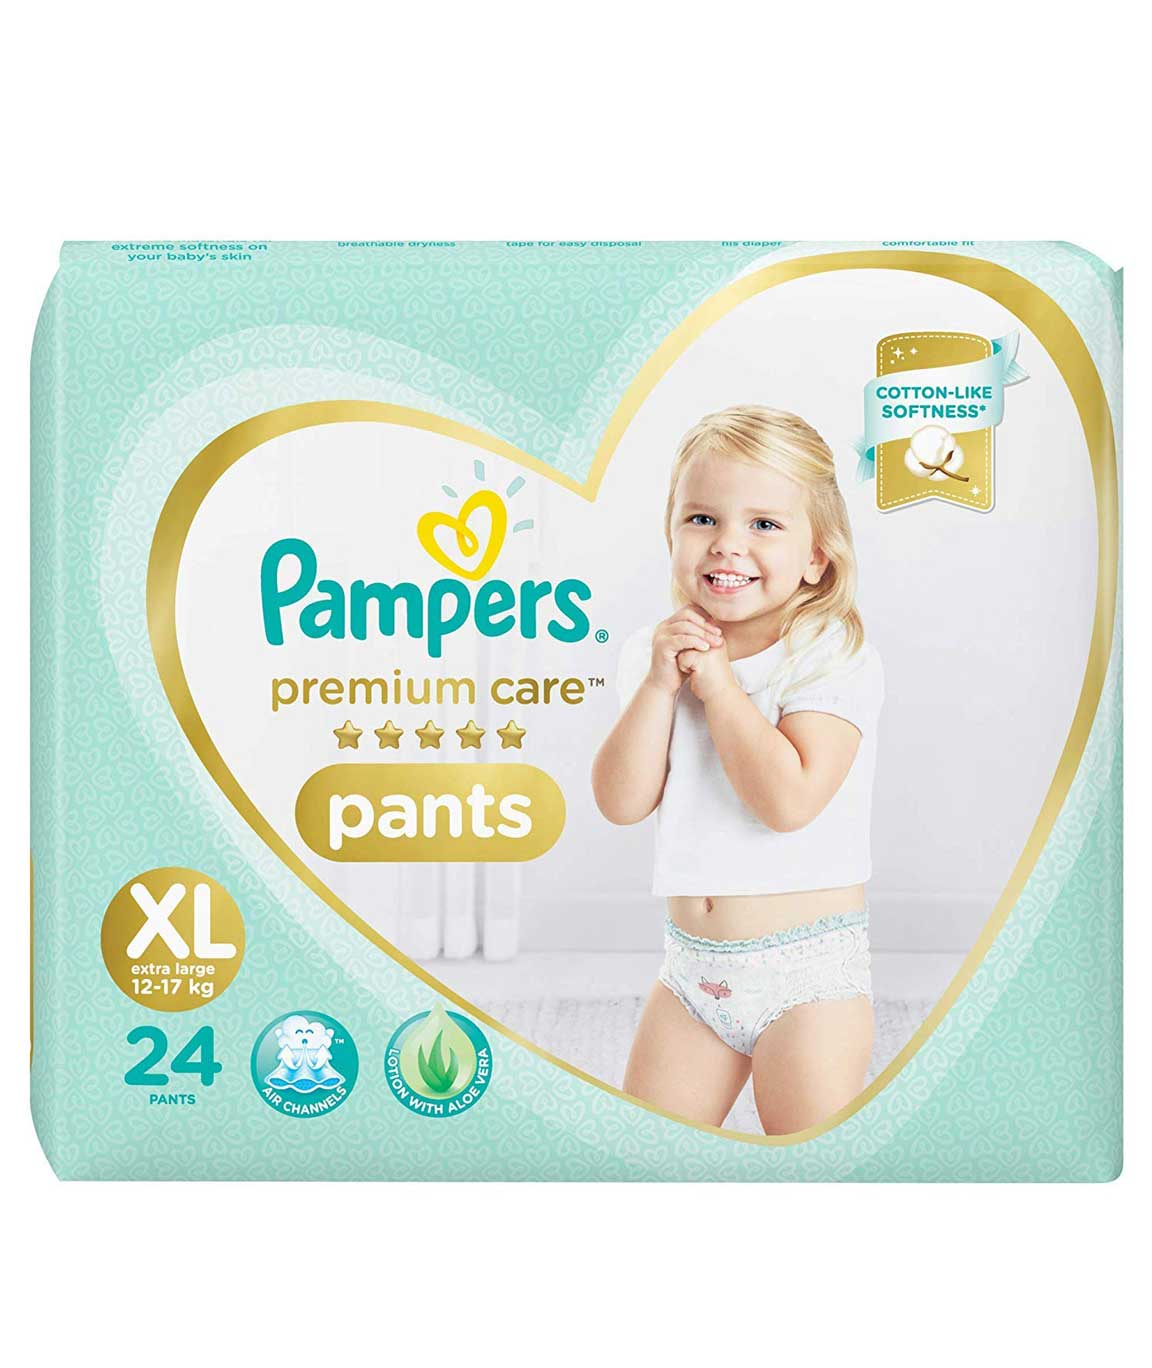 Pampers Premium Care Pants Diapers, X-Large, XL 24 Count